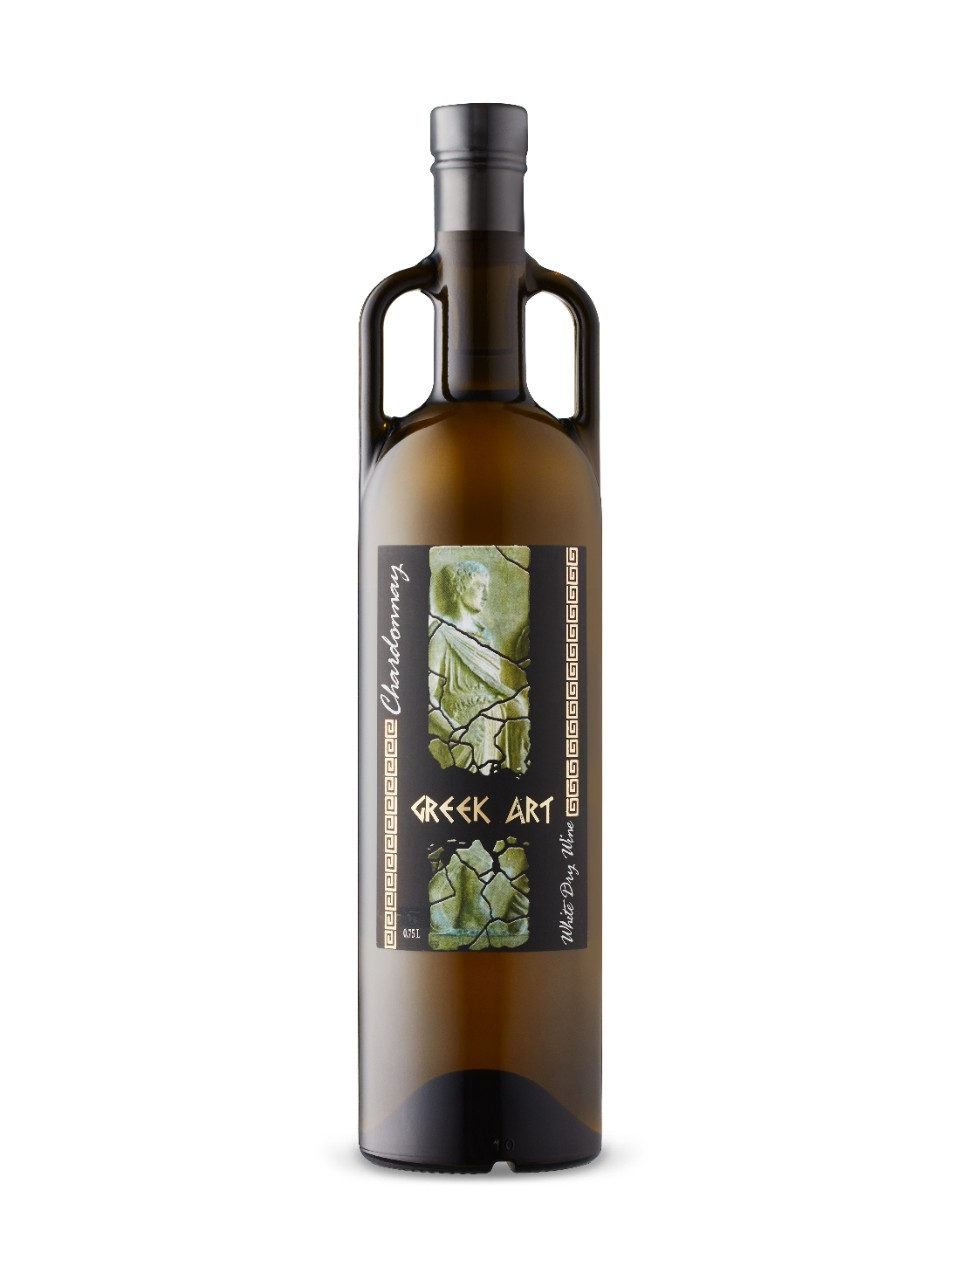 Image for Greek Art Chardonnay from LCBO